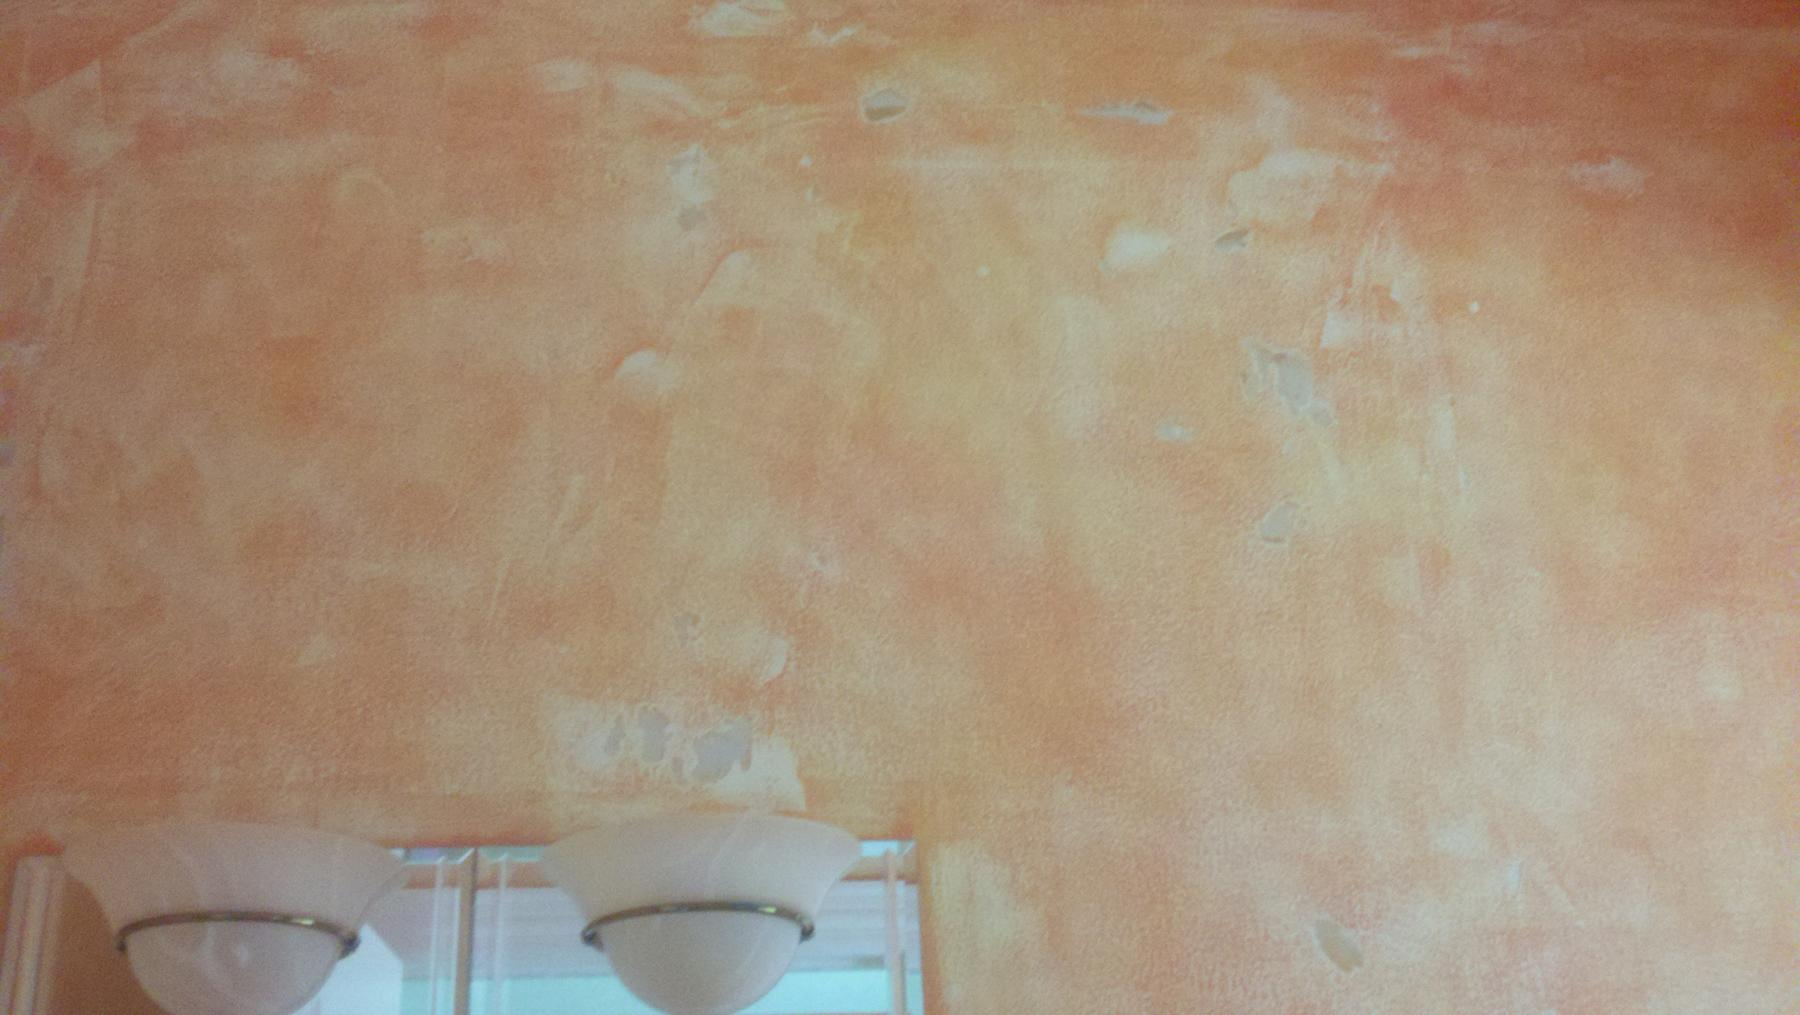 Download Removing Wallpaper Glue Residue From Walls Gallery. SaveEnlarge